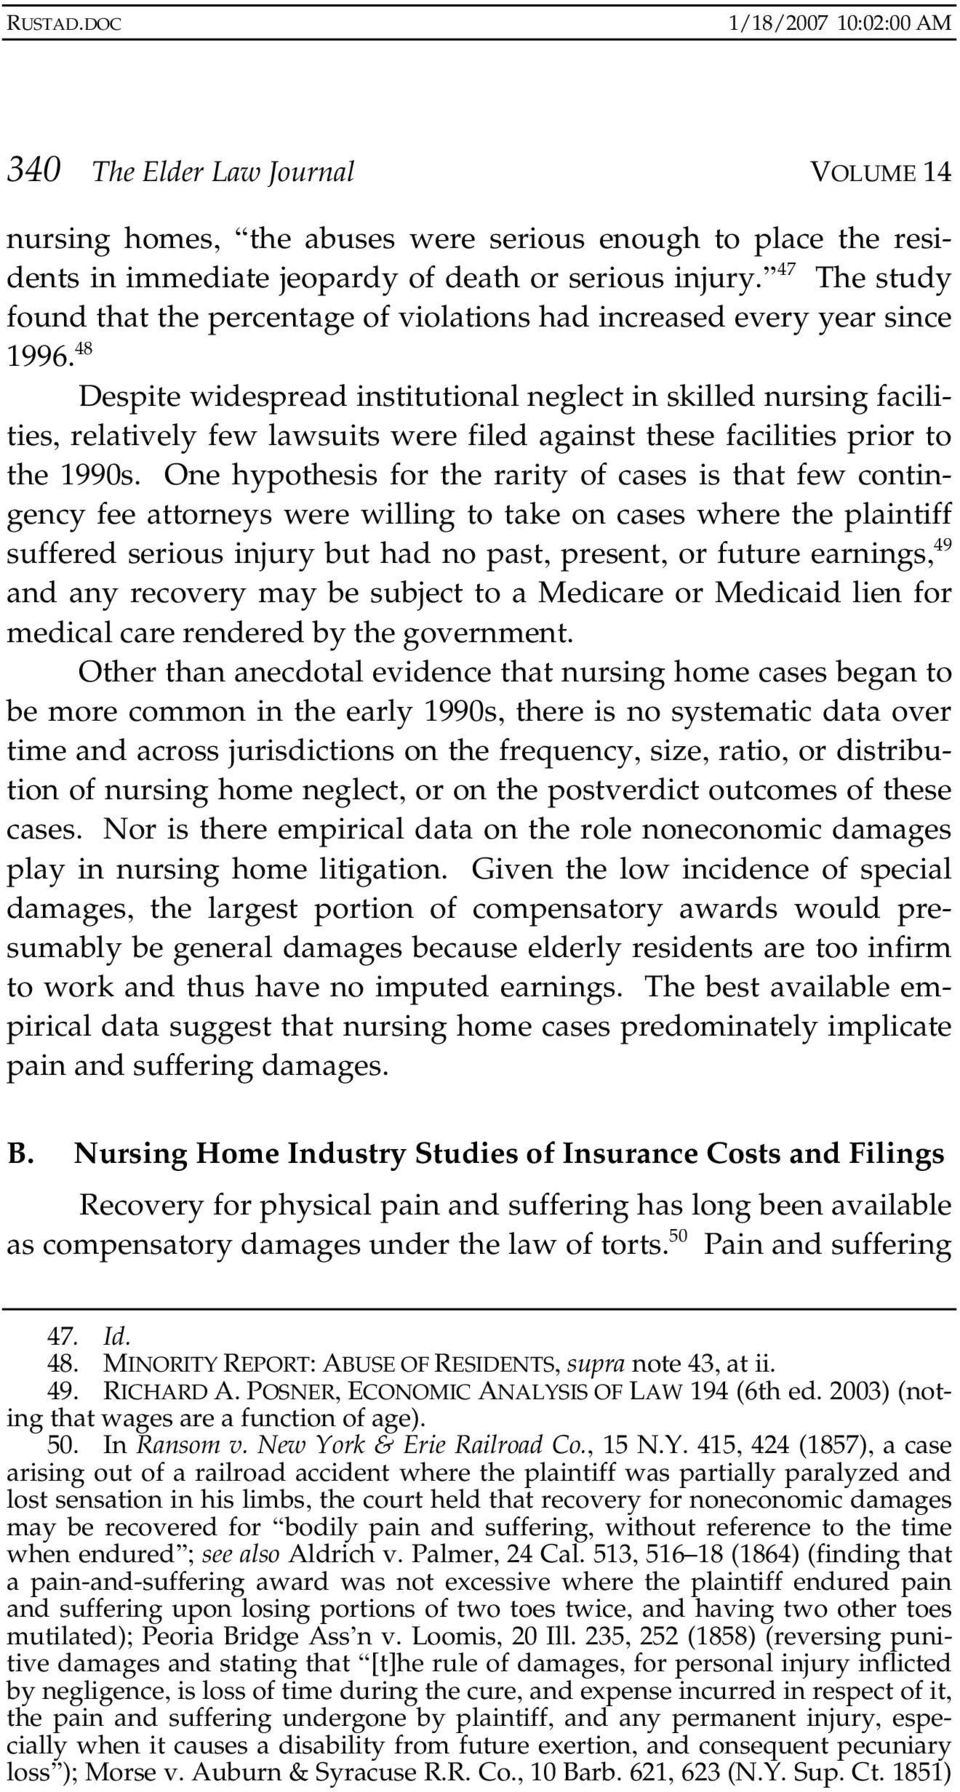 48 Despite widespread institutional neglect in skilled nursing facilities, relatively few lawsuits were filed against these facilities prior to the 1990s.